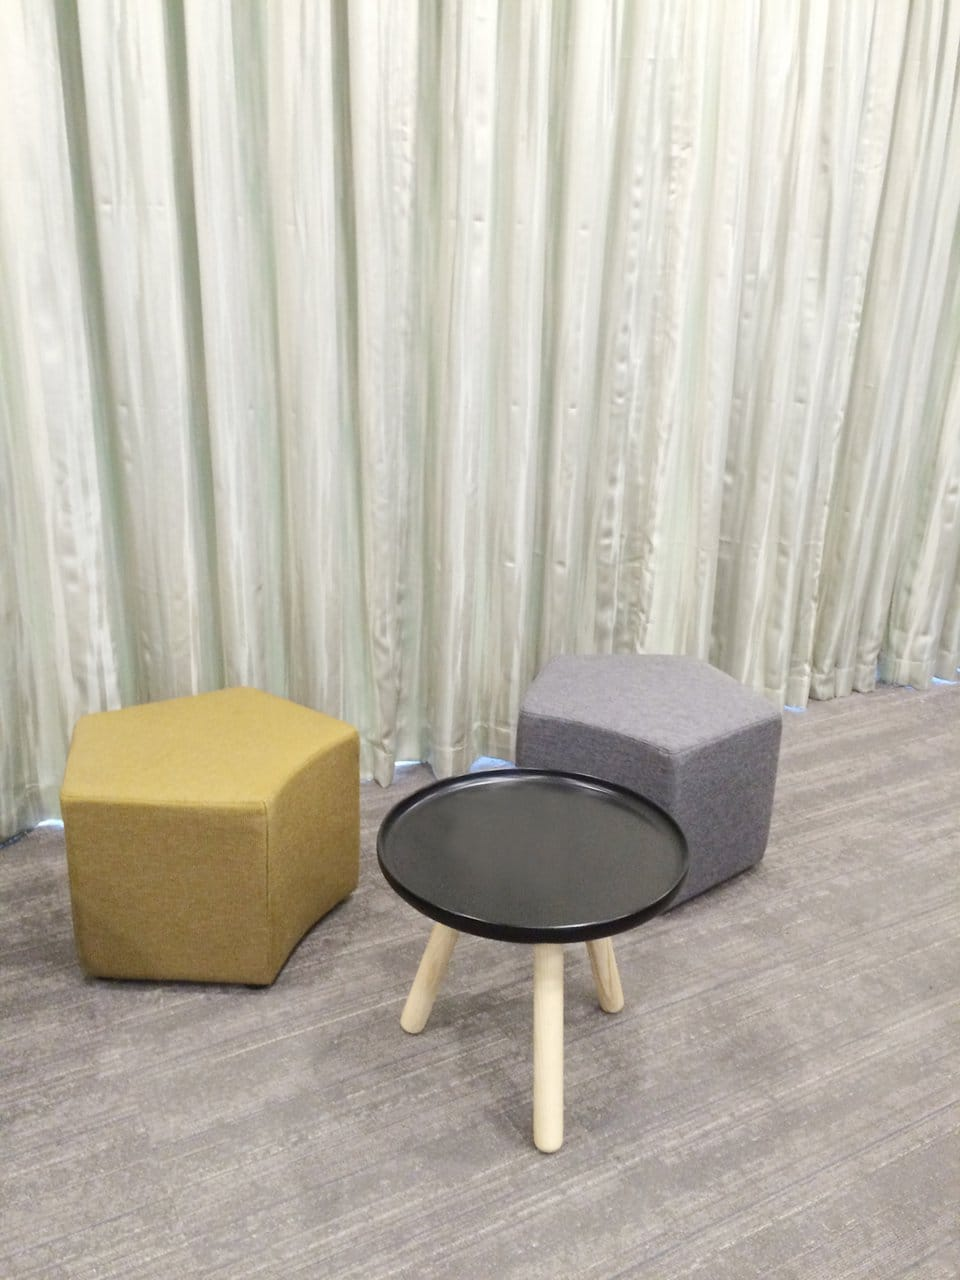 Expedia - New Bridge Road | Products Seen: [Seed Modular Stool & Lucy Coffee Table]<br />